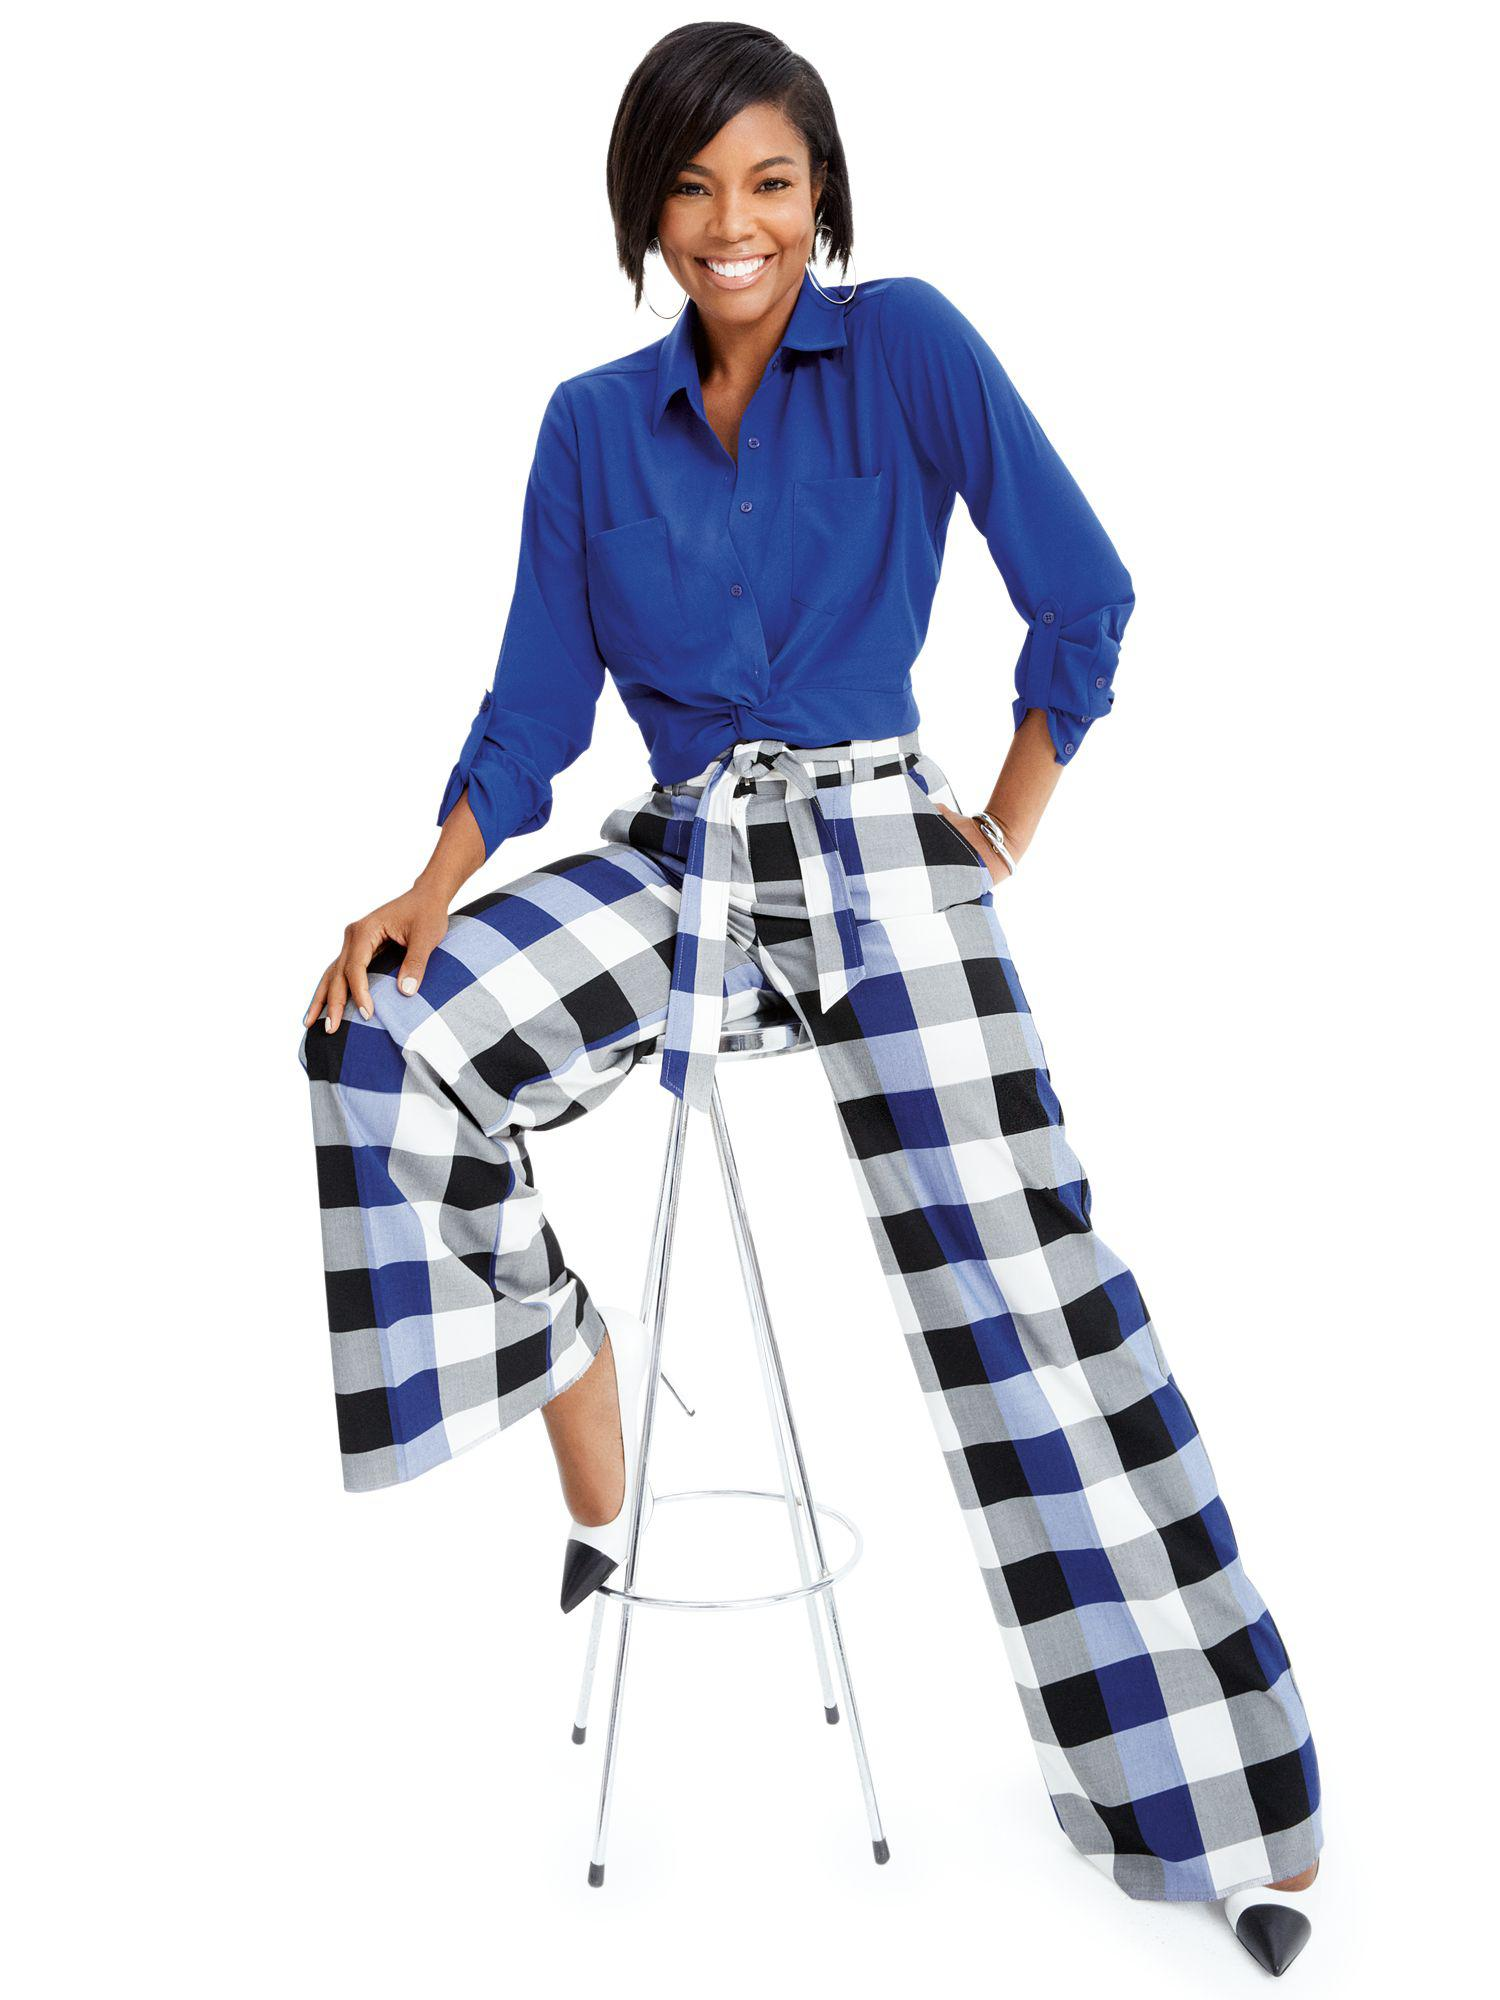 ad0d36f0f5d Lyst - New York   Company Gabrielle Union Collection - Blue Plaid ...